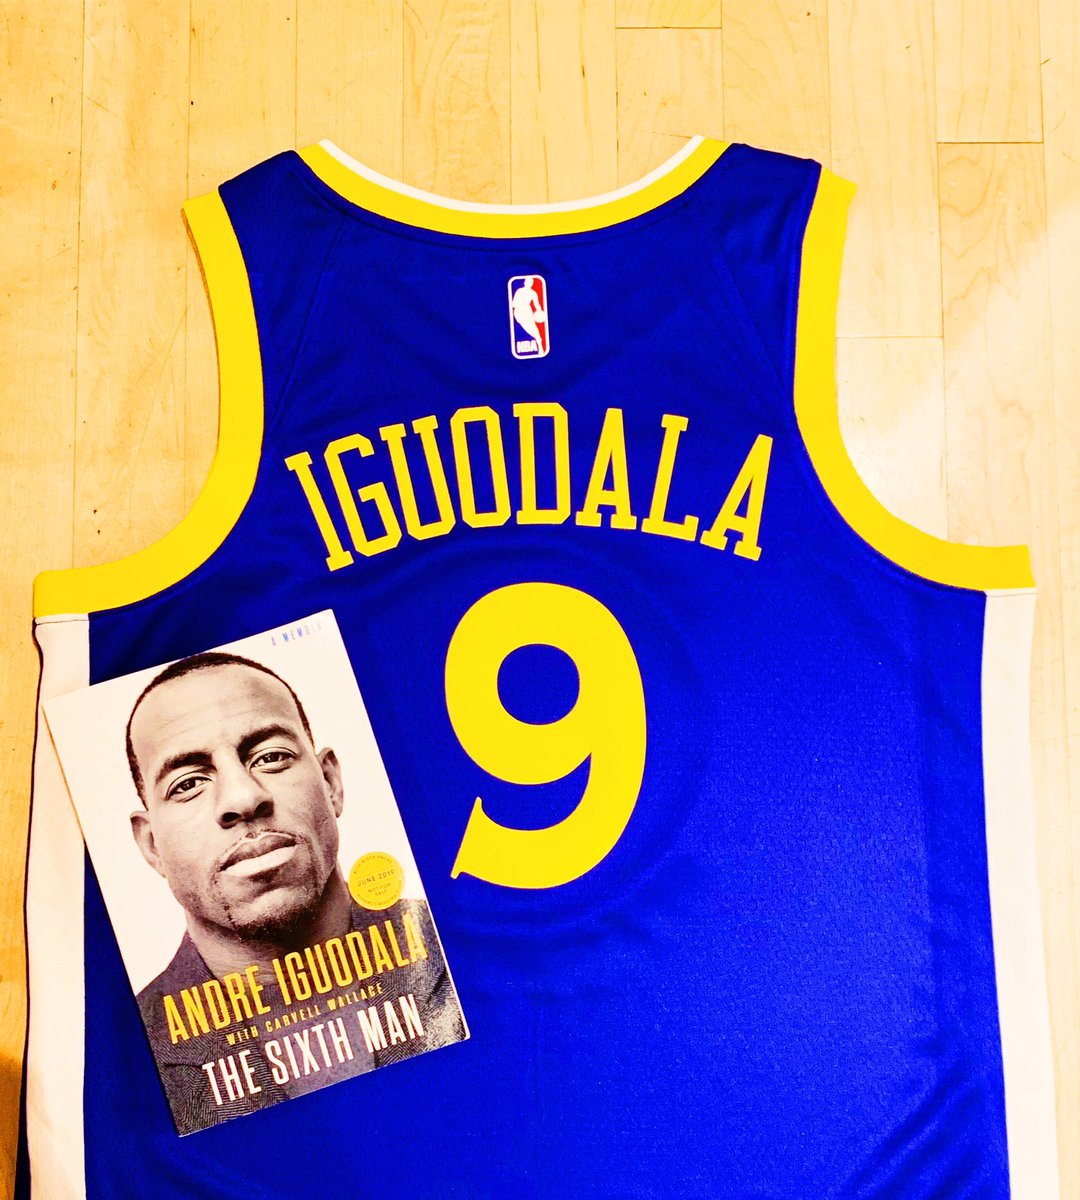 """3x @NBA Champion, @andre will be signing copies of his new book """"The Sixth Man"""" Tuesday, June 25th @NBASTORE NYC!  Fans can purchase (1) additional item to have signed."""